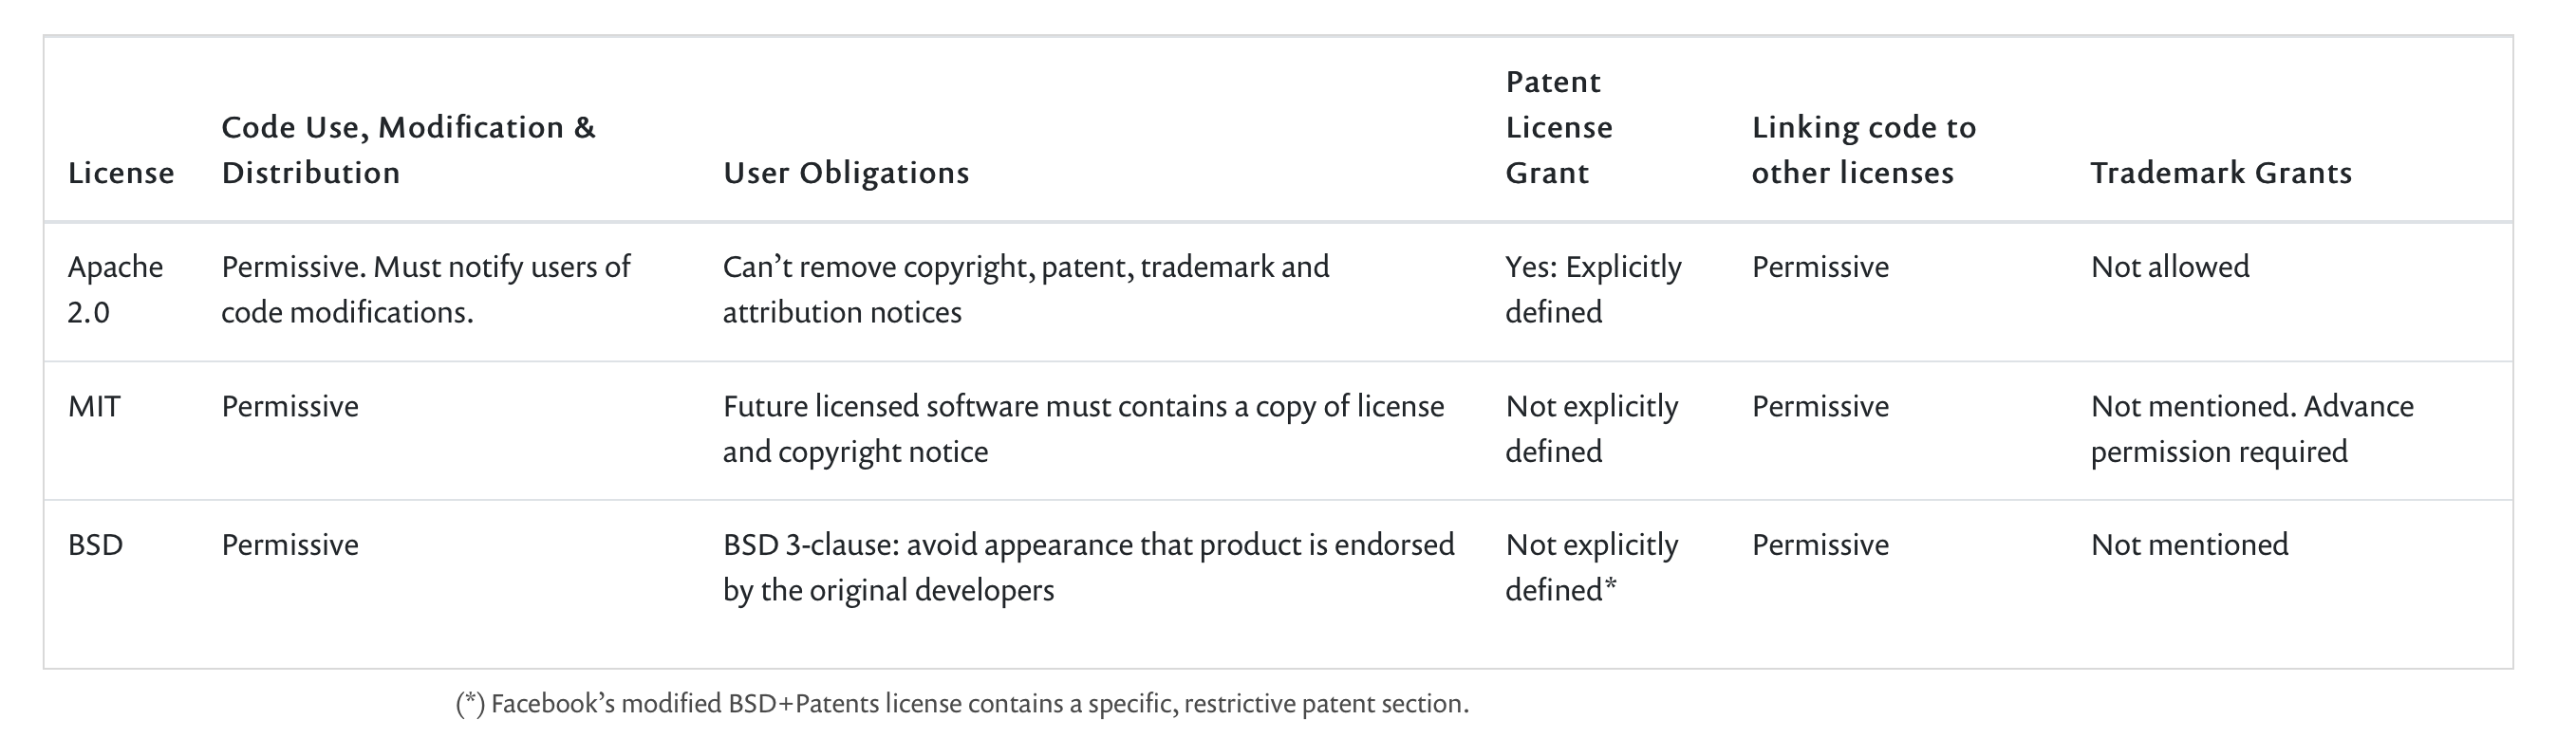 Comparision of open-source licenses - extract